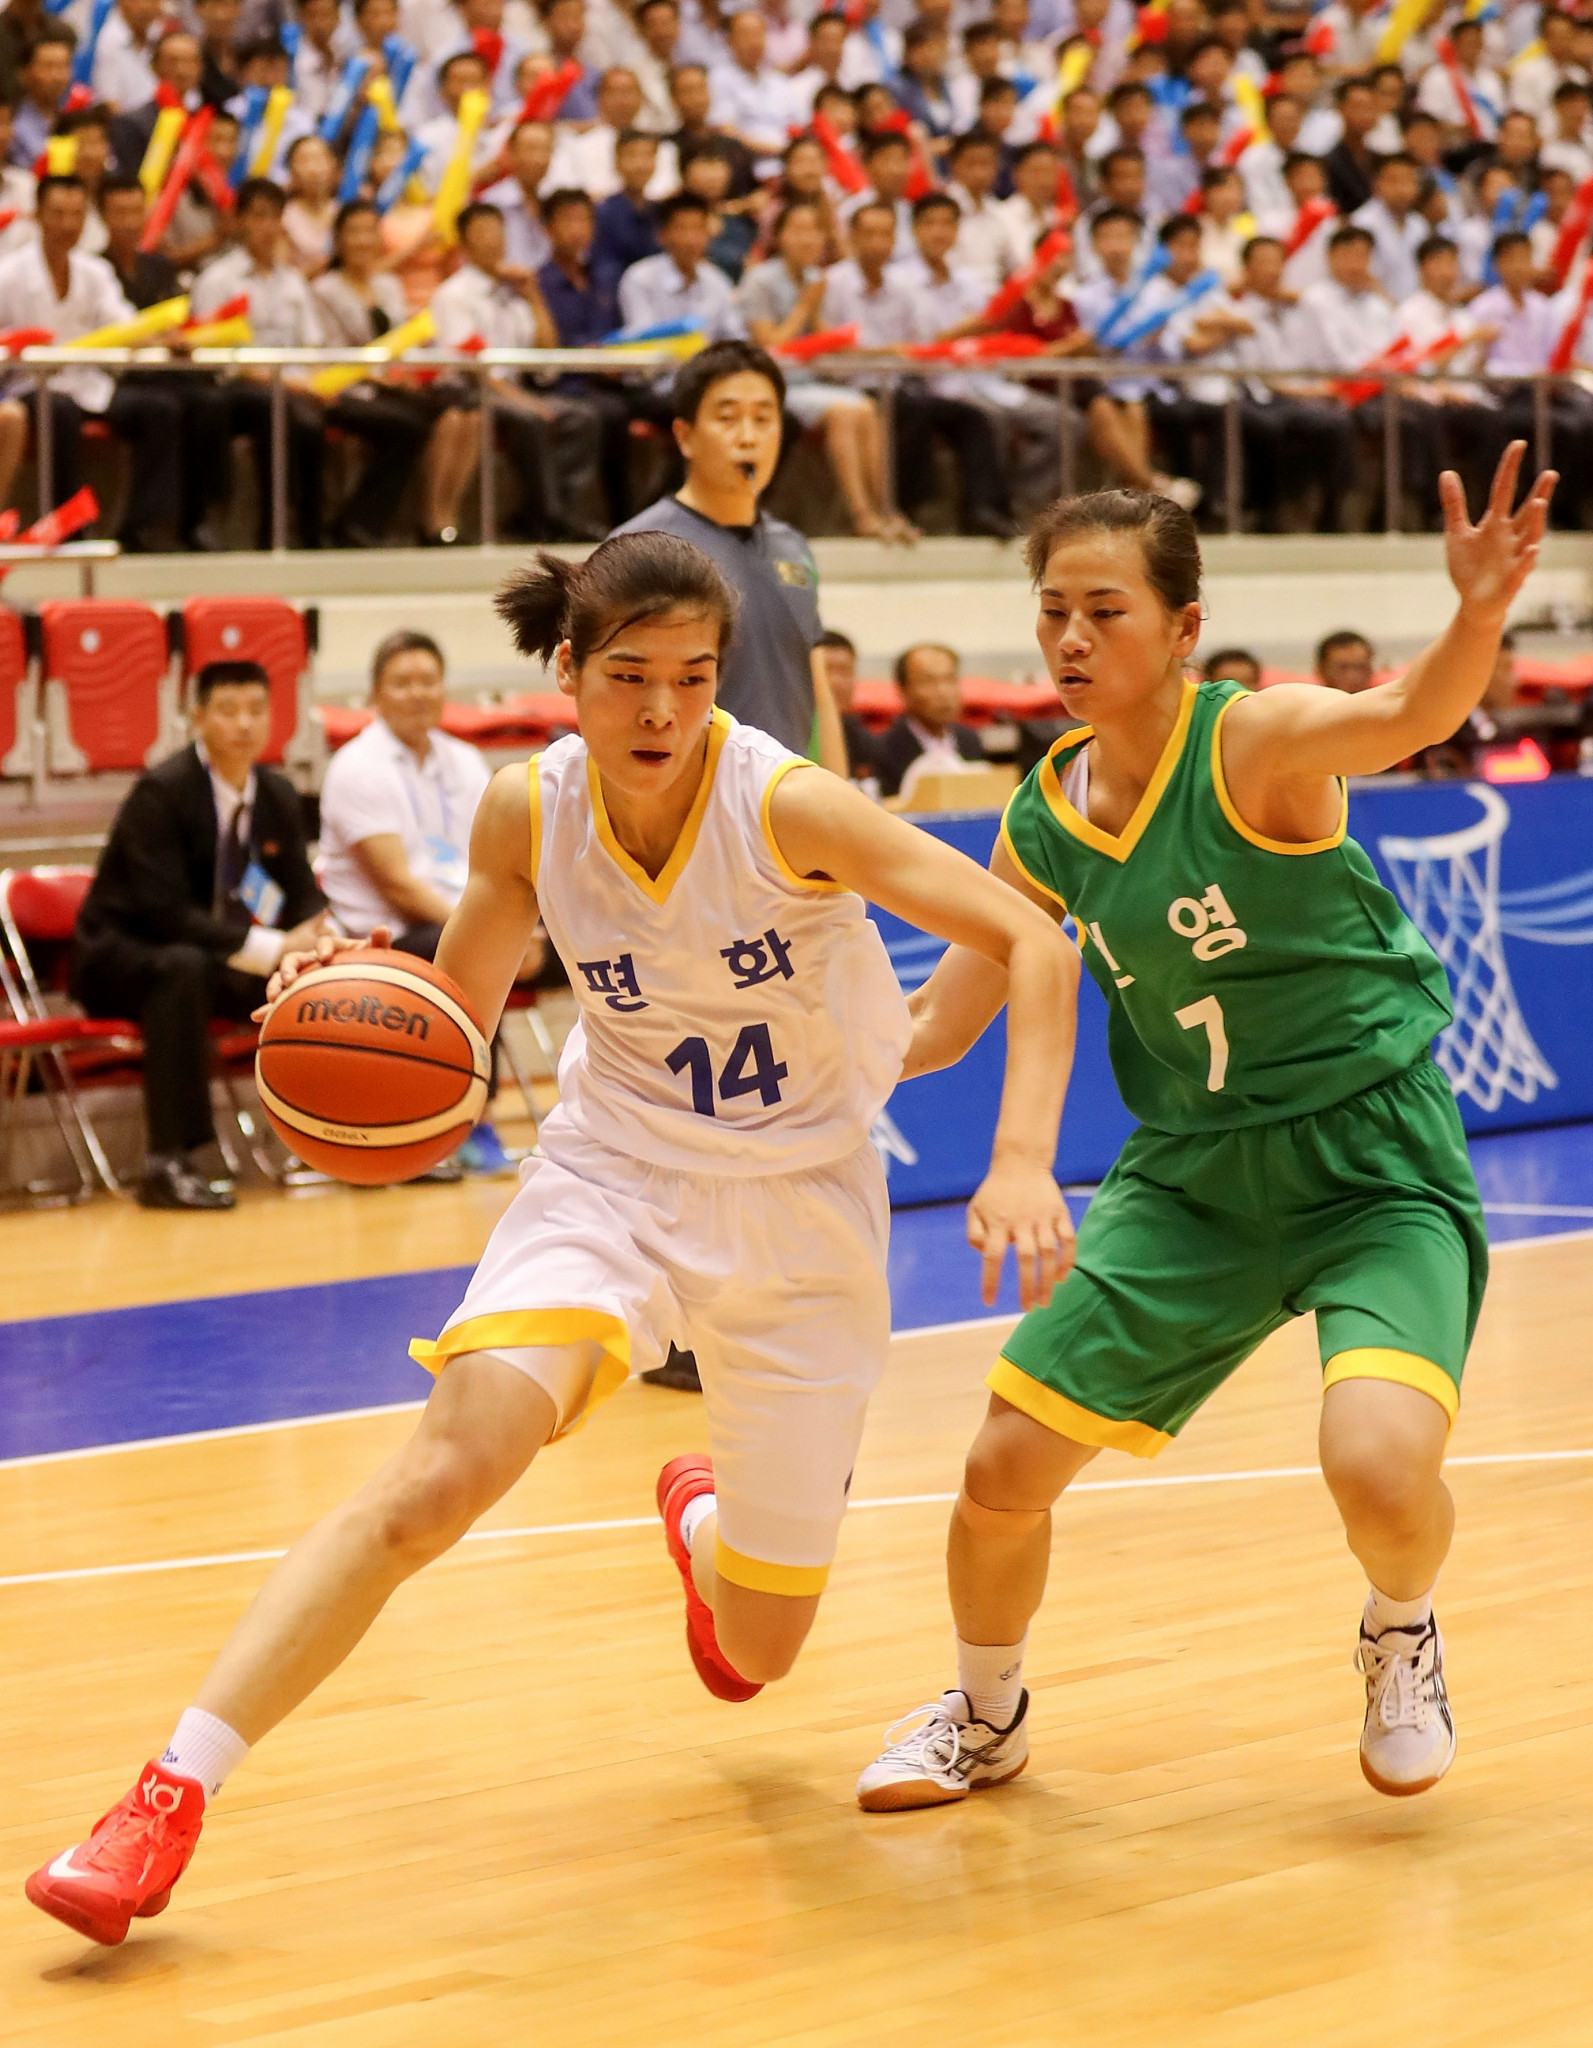 Joint Korean basketball match gives taster of Asian Games team